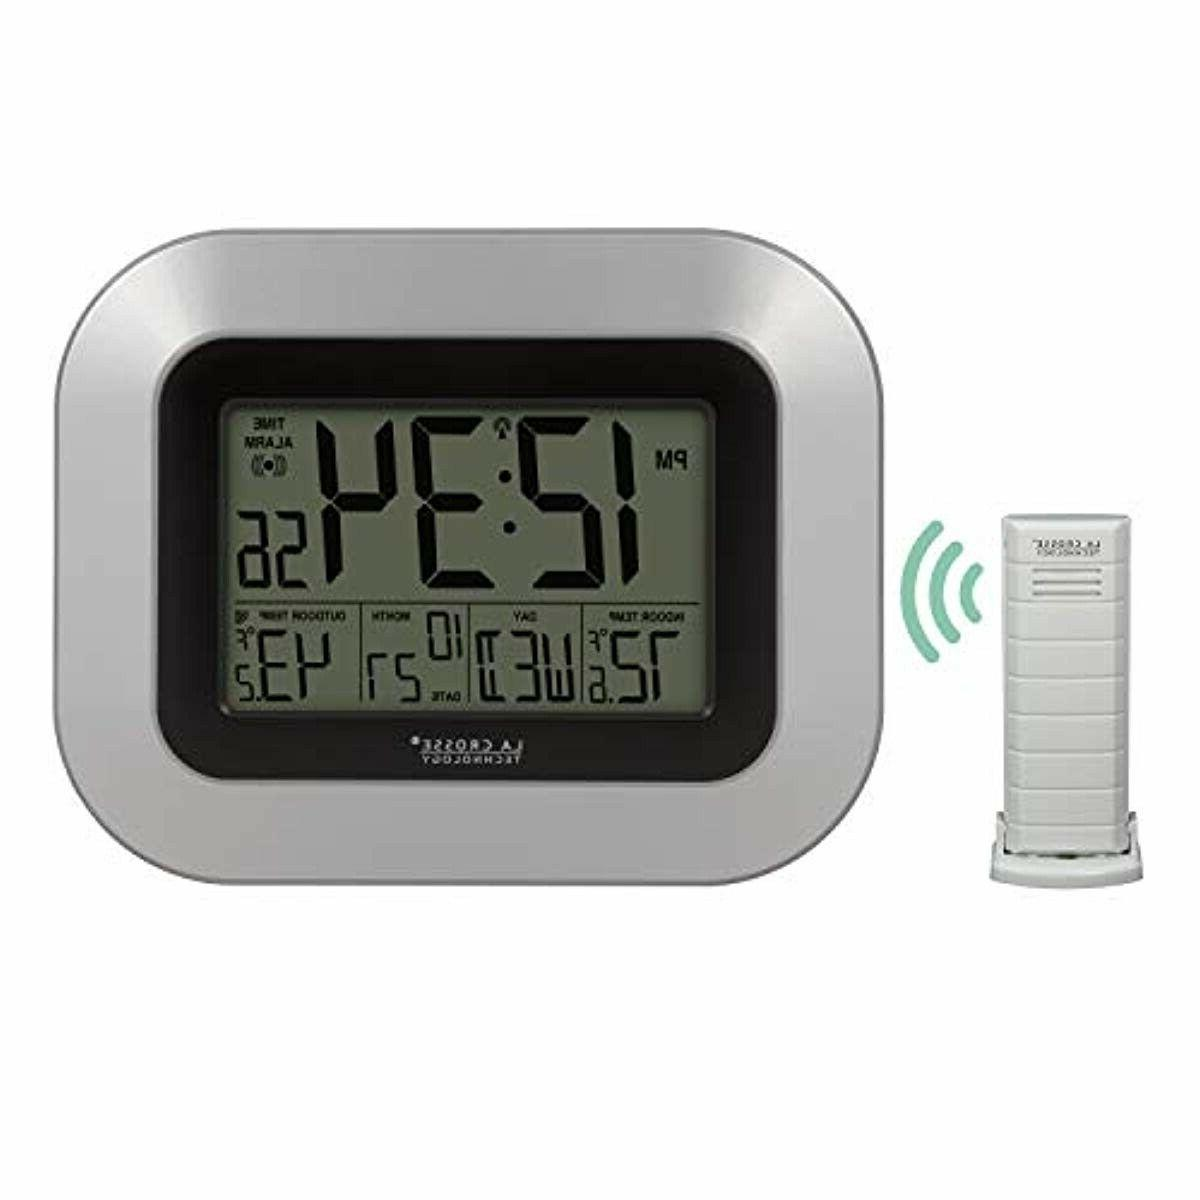 WS-8115U-S-INT Digital Clock Outdoor